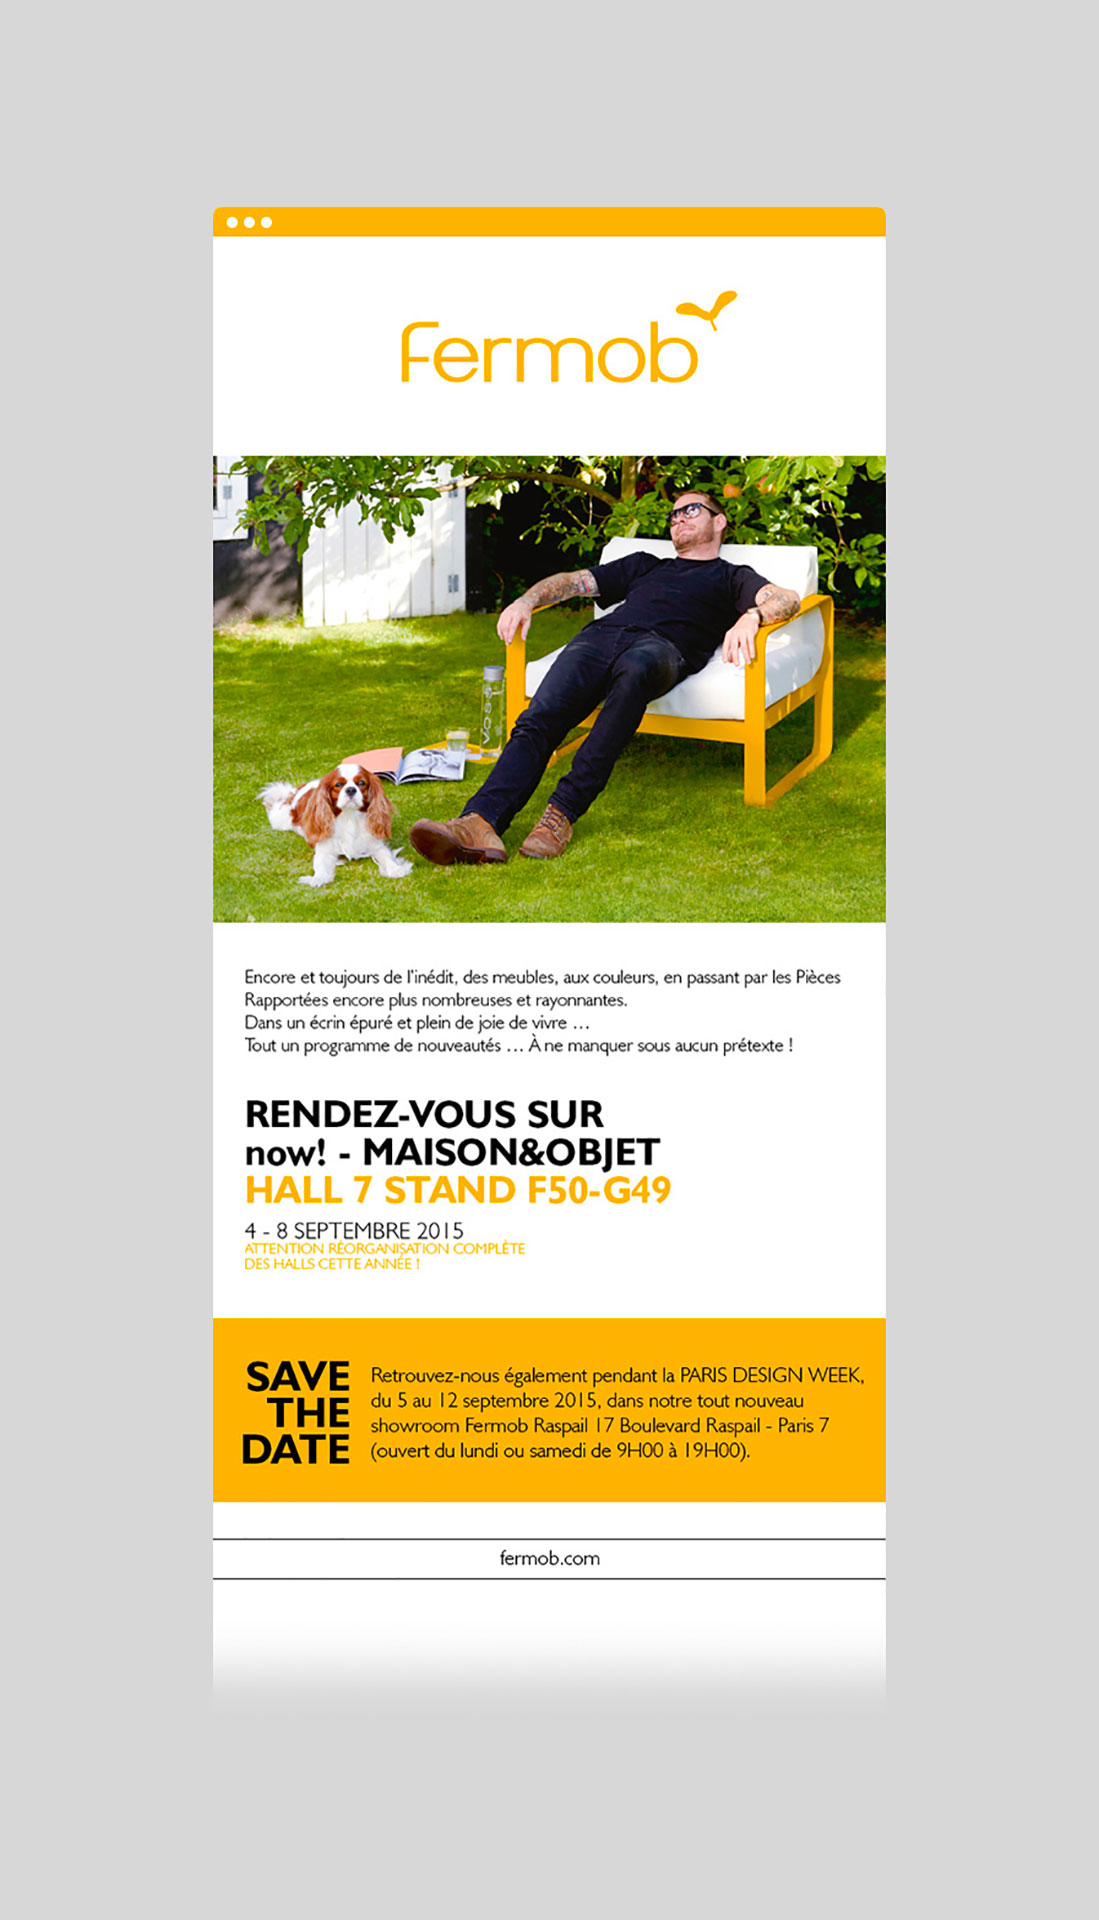 Édition / shooting / webdesign / graphisme pour le catalogue / magazine Fermob daily